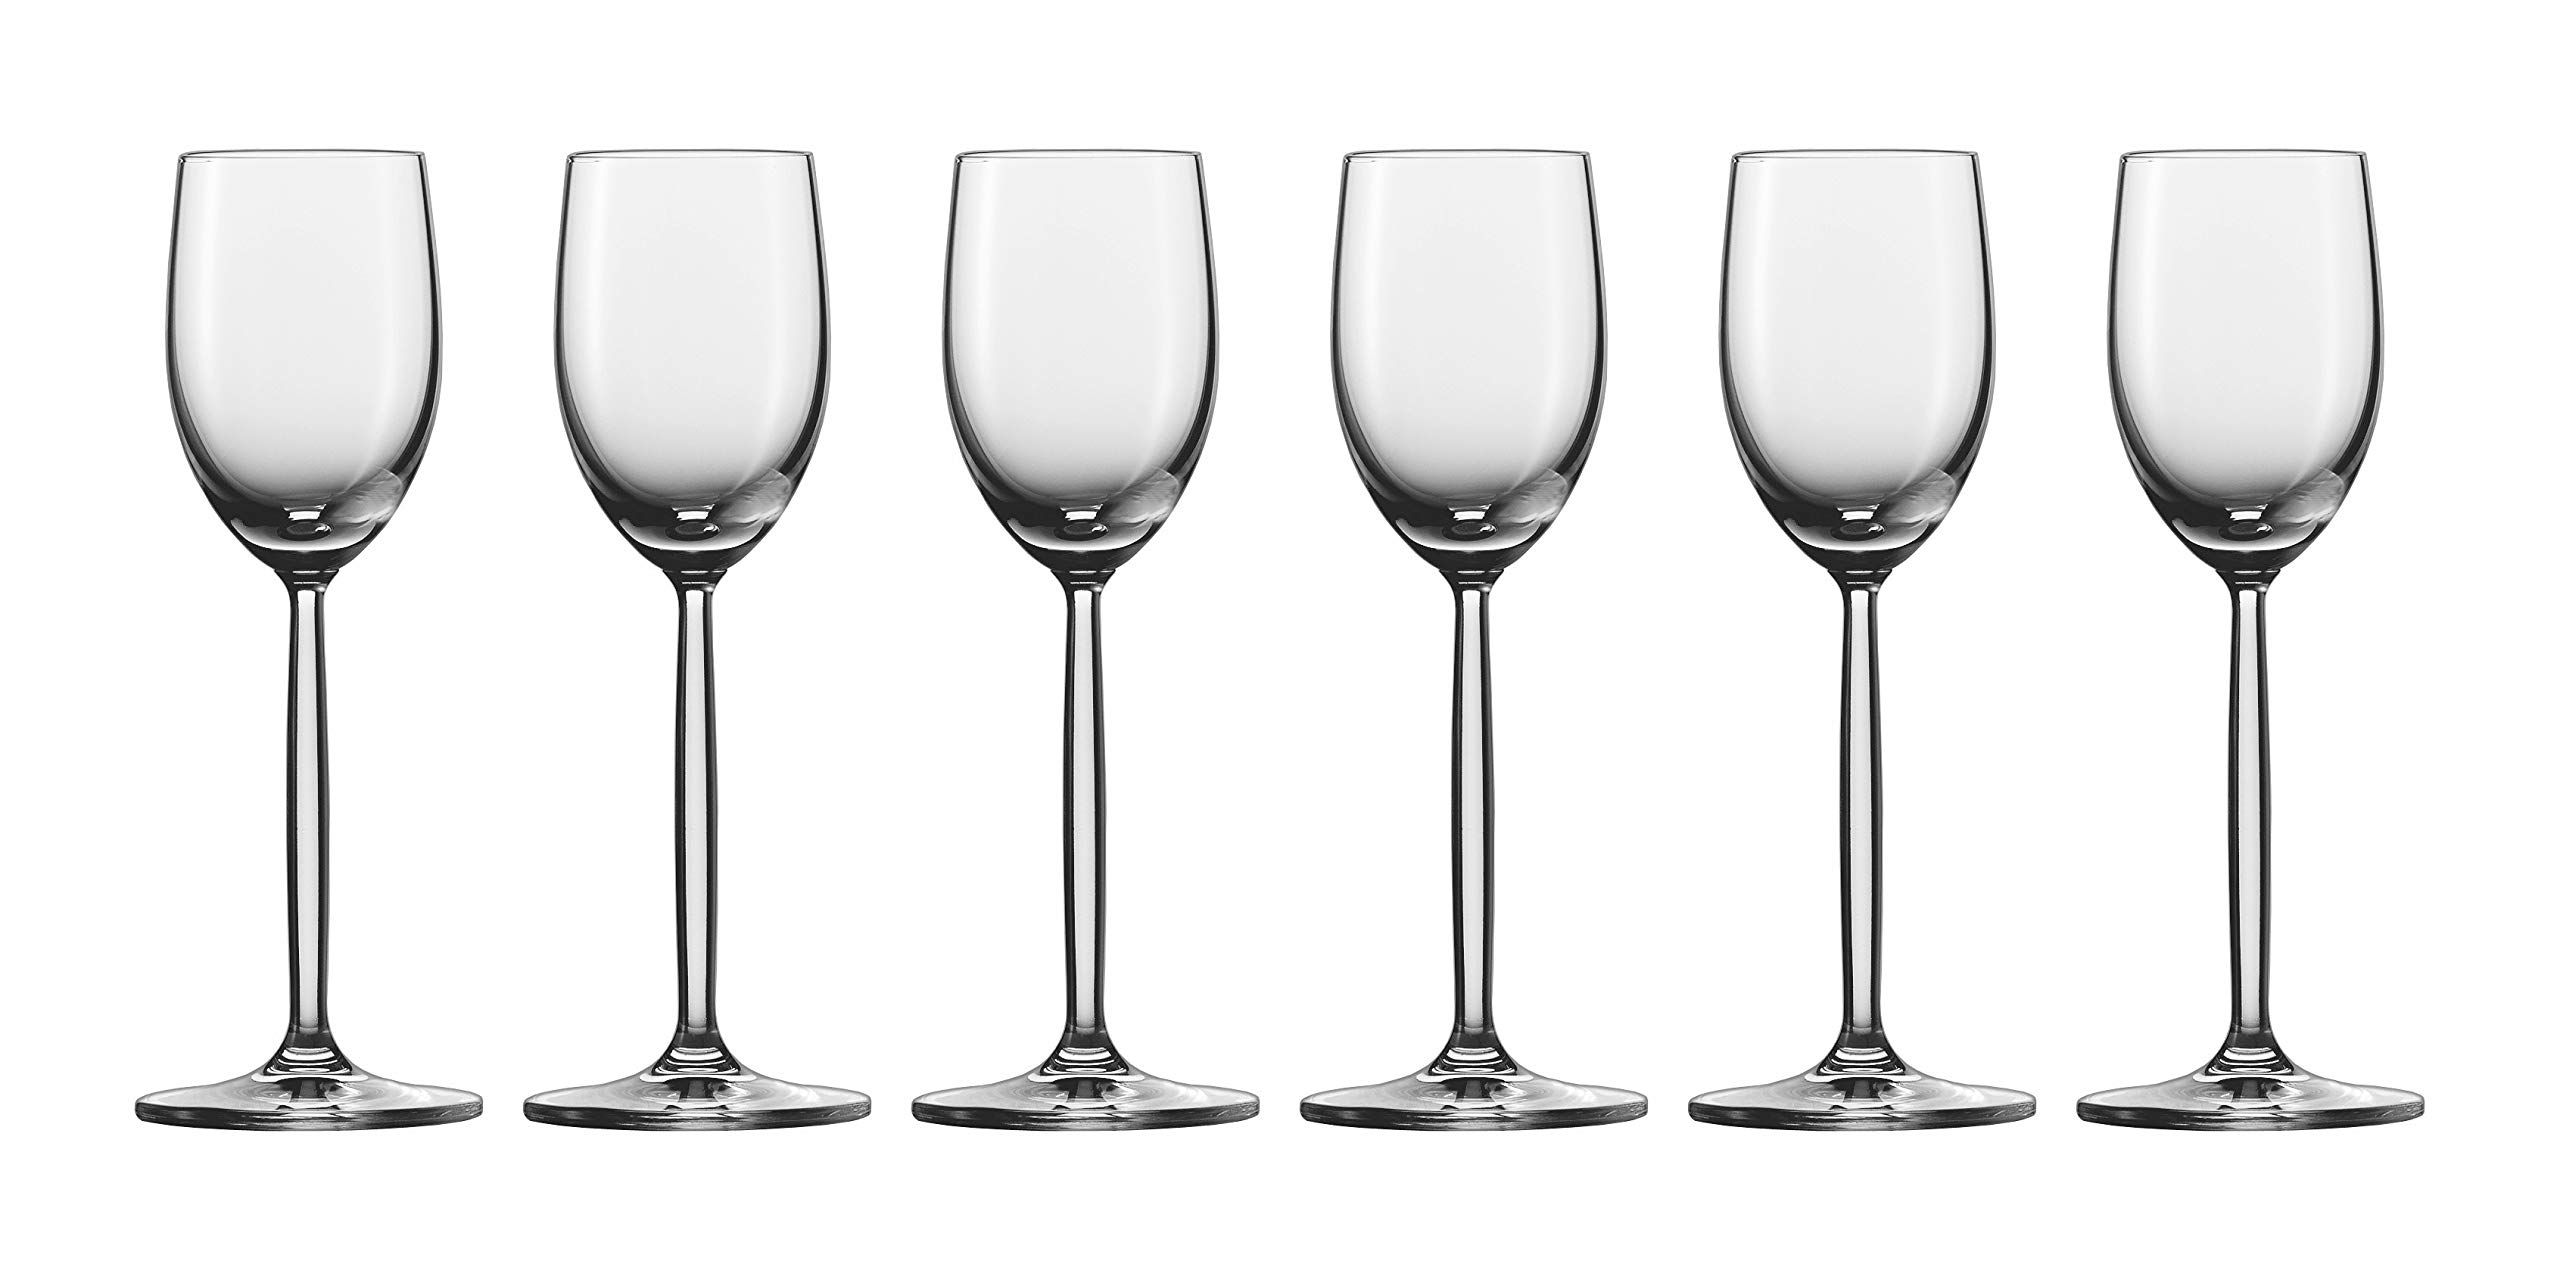 Set of 6 Schott Zwiesel Crystal 2.7 oz. Diva Liqueur Cordial Glasses by Fortessa by Fortessa